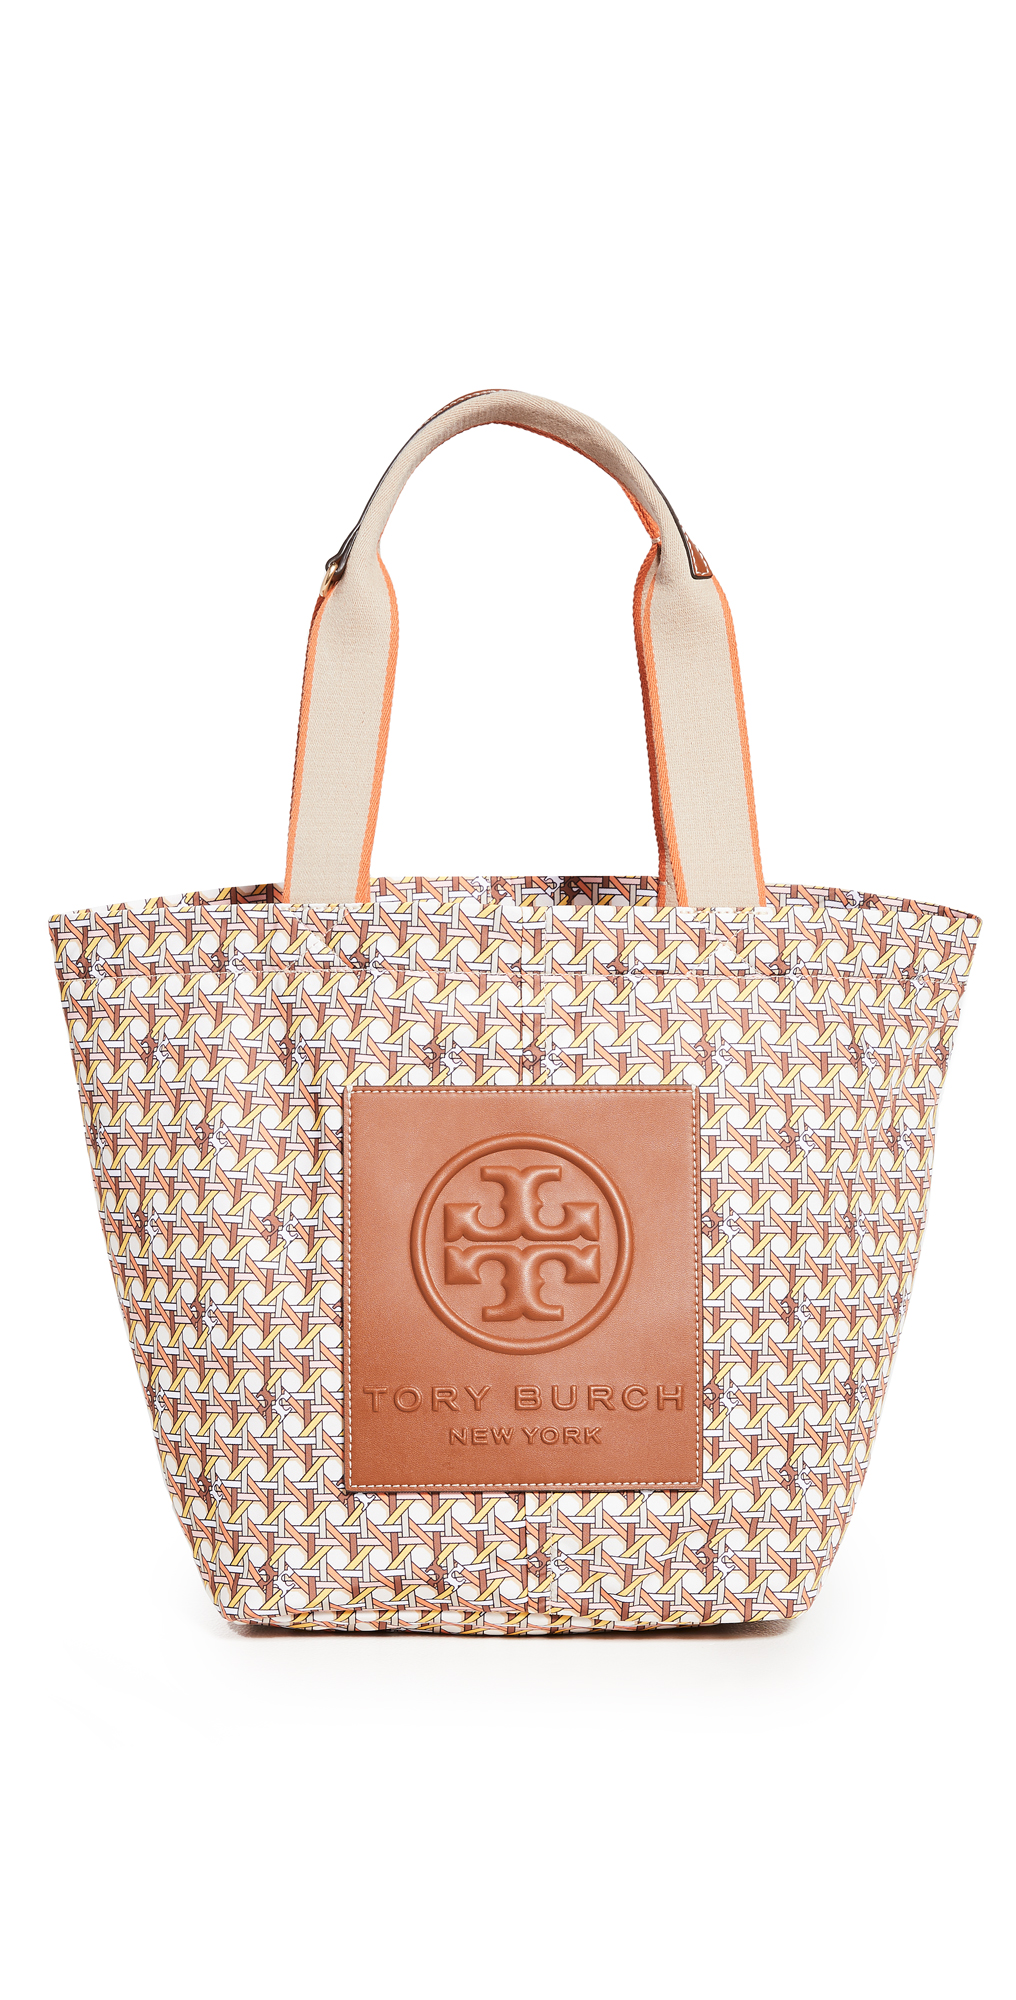 Tory Burch Totes BASKET WEAVE PRINTED SMALL TOTE